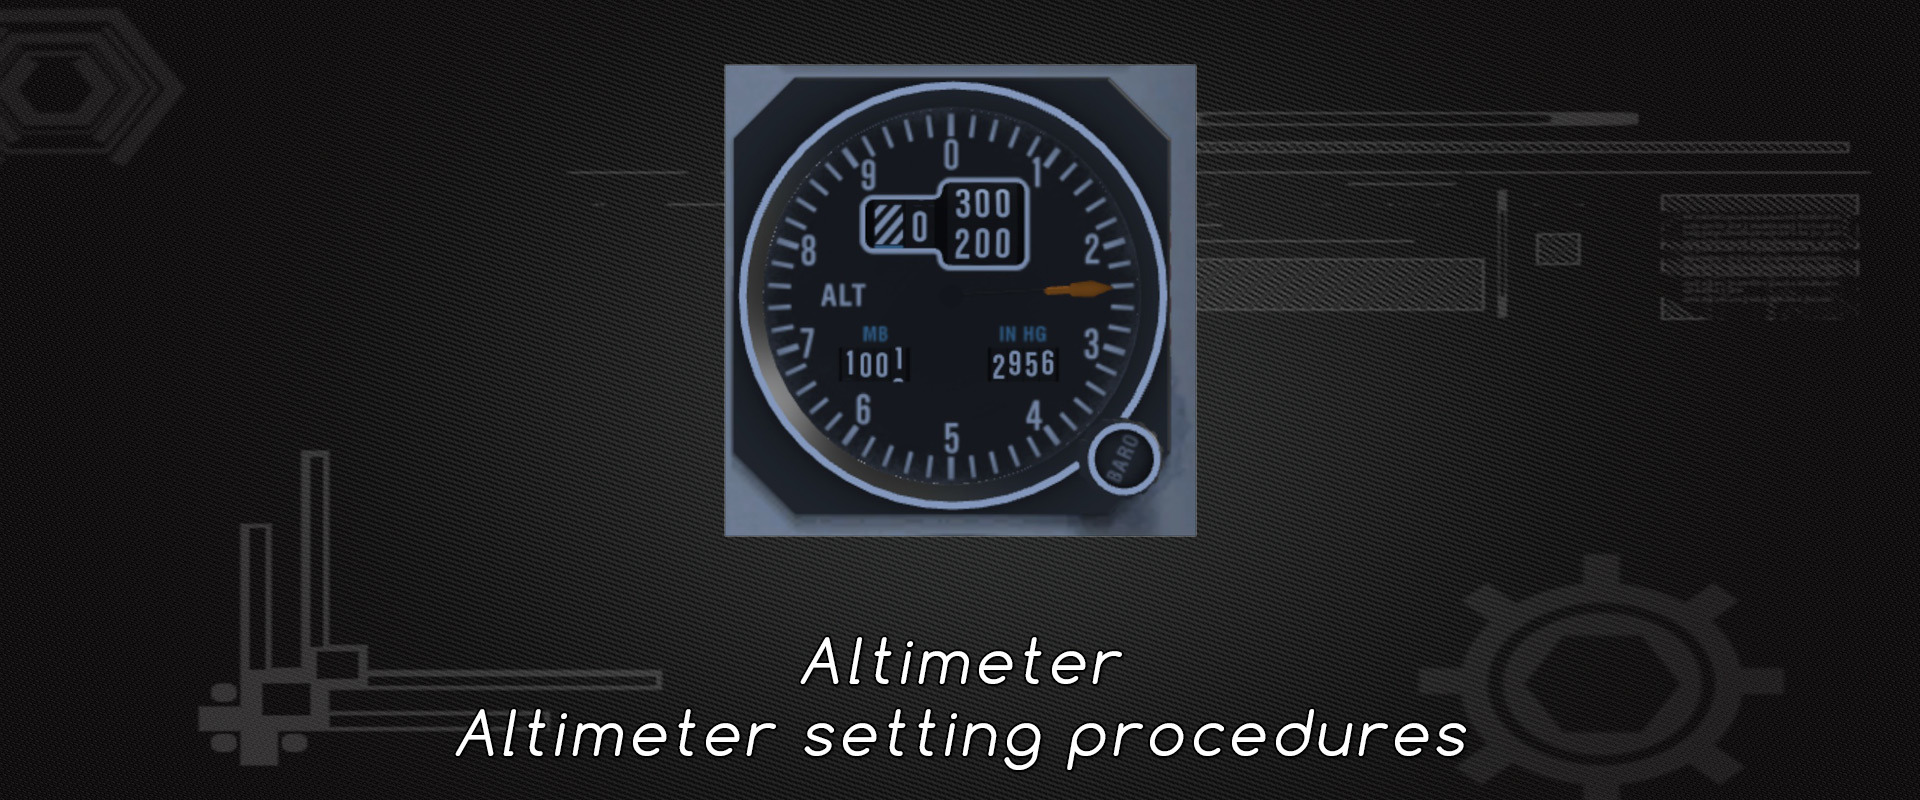 Hg Fly Altimeter And Altimeter Setting Procedures - Learn To Fly